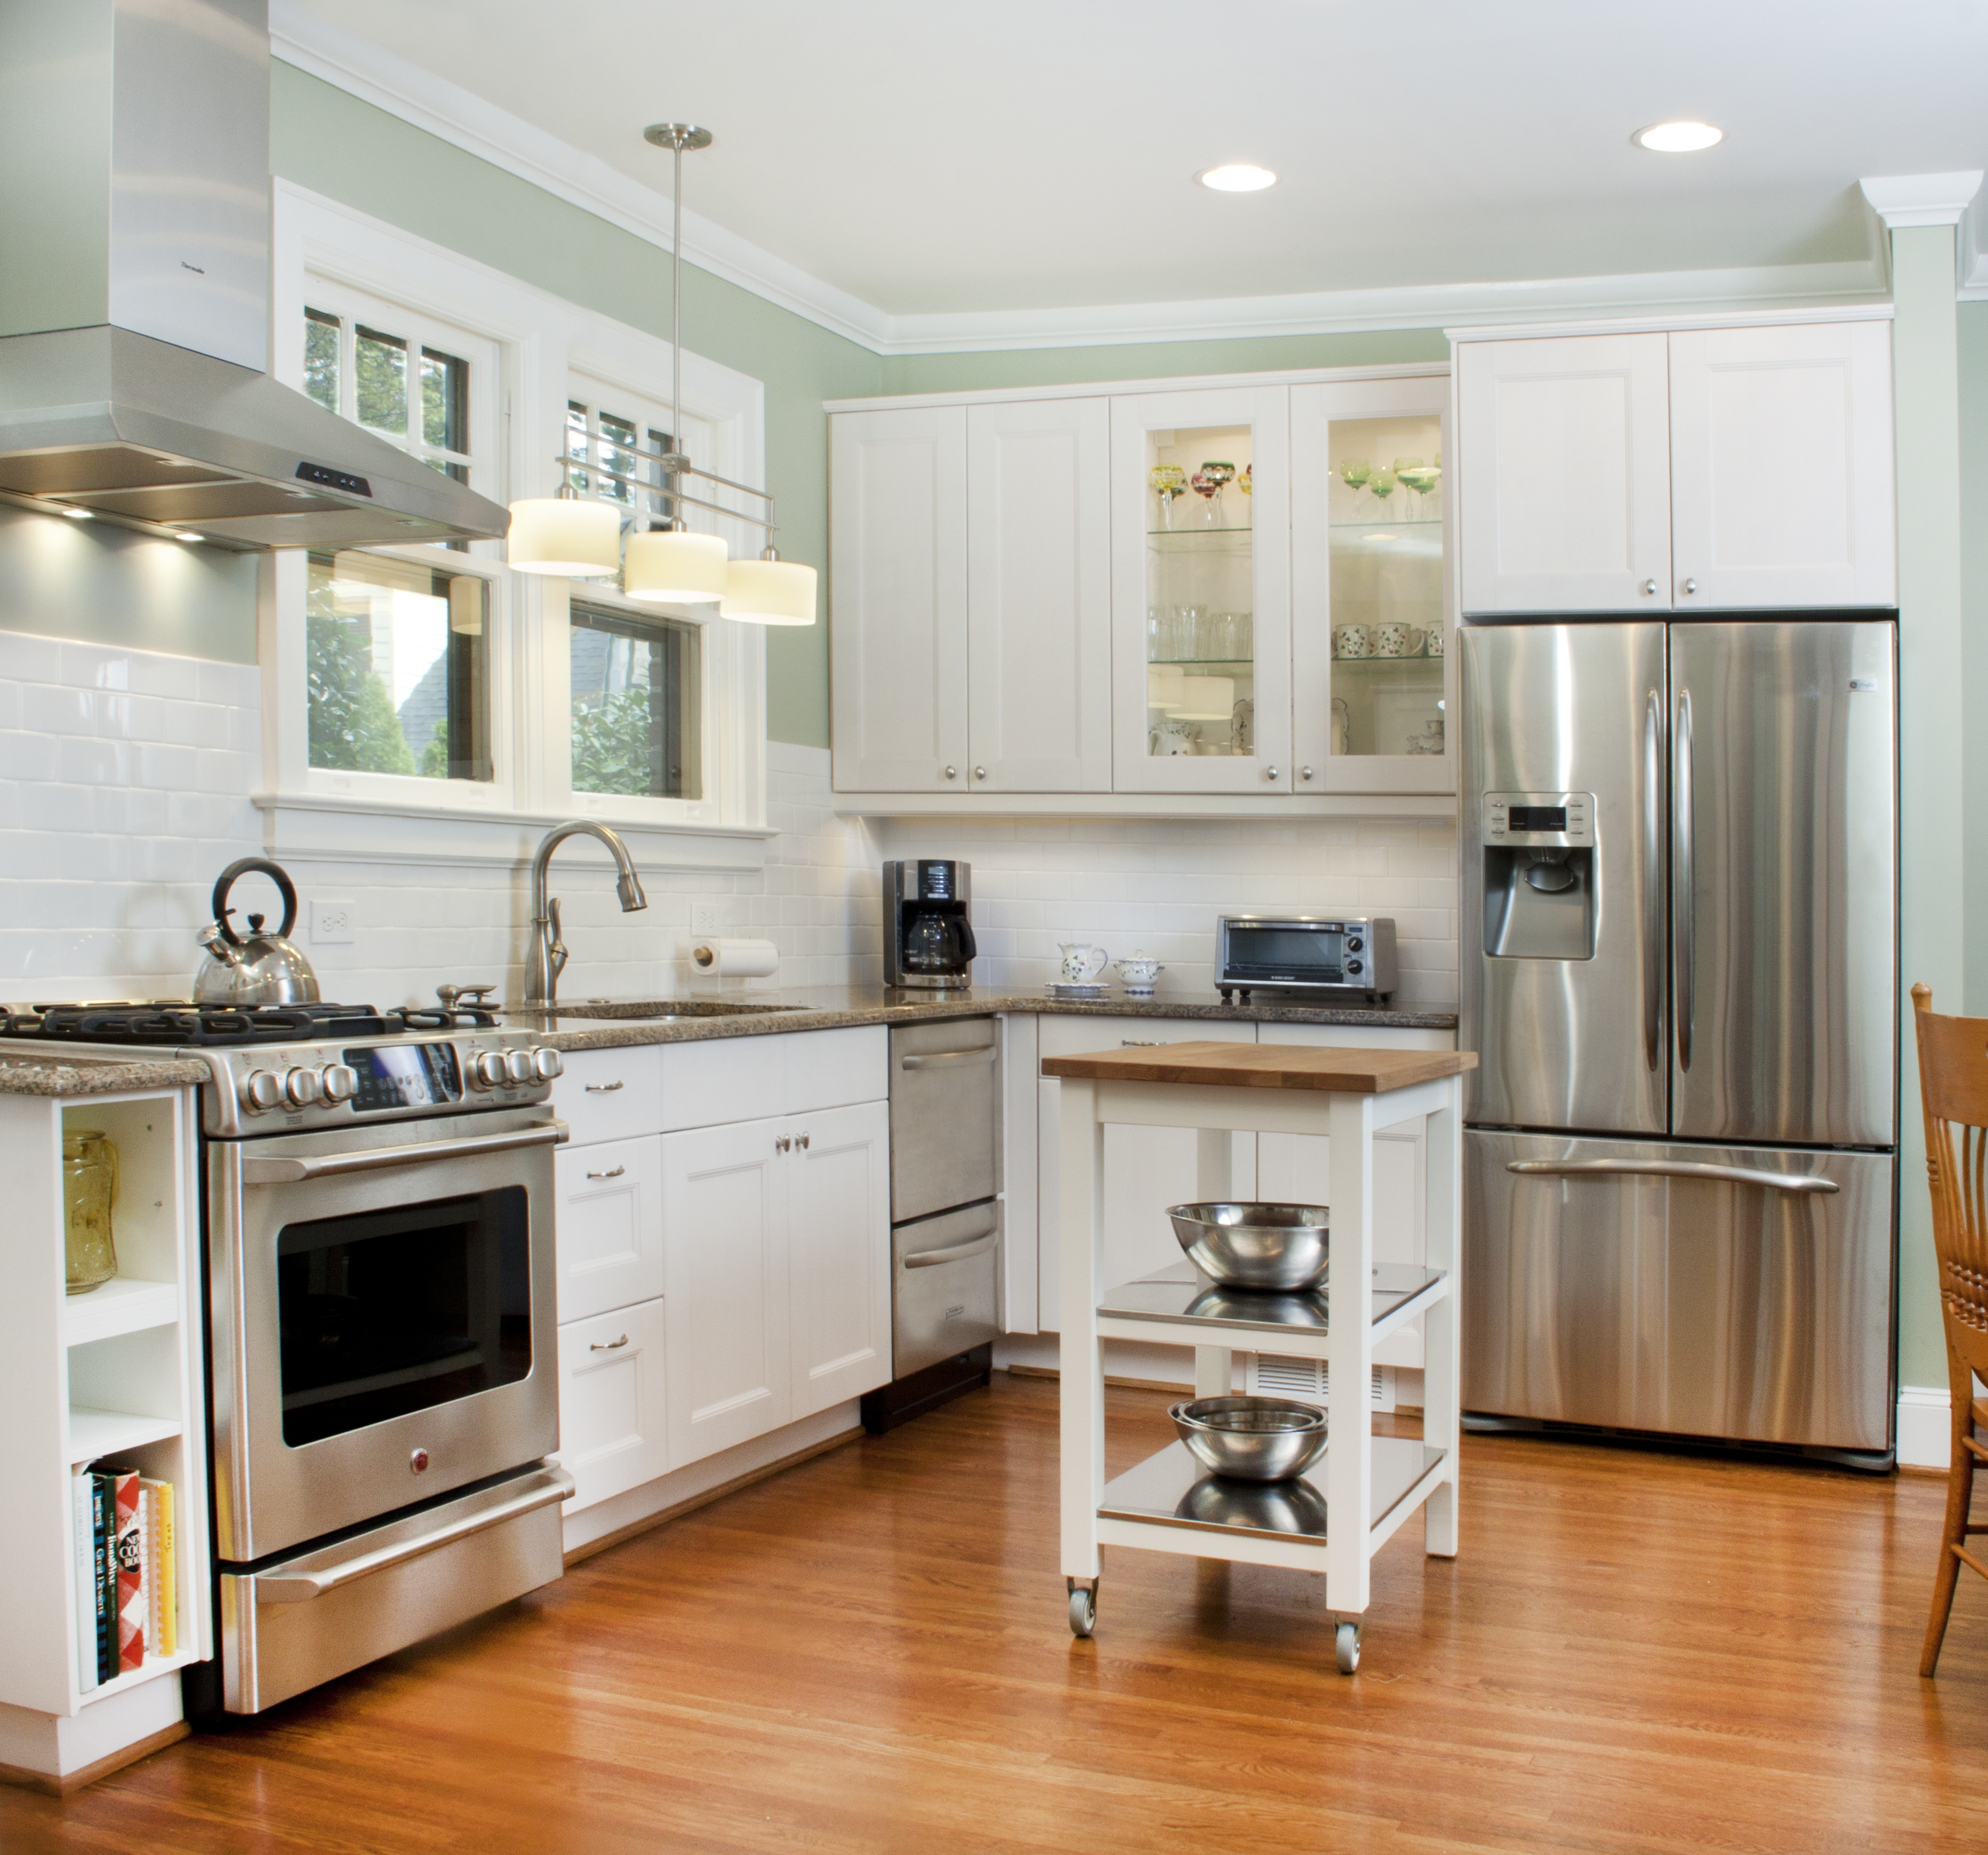 cabinet ideas for small kitchens photo - 2